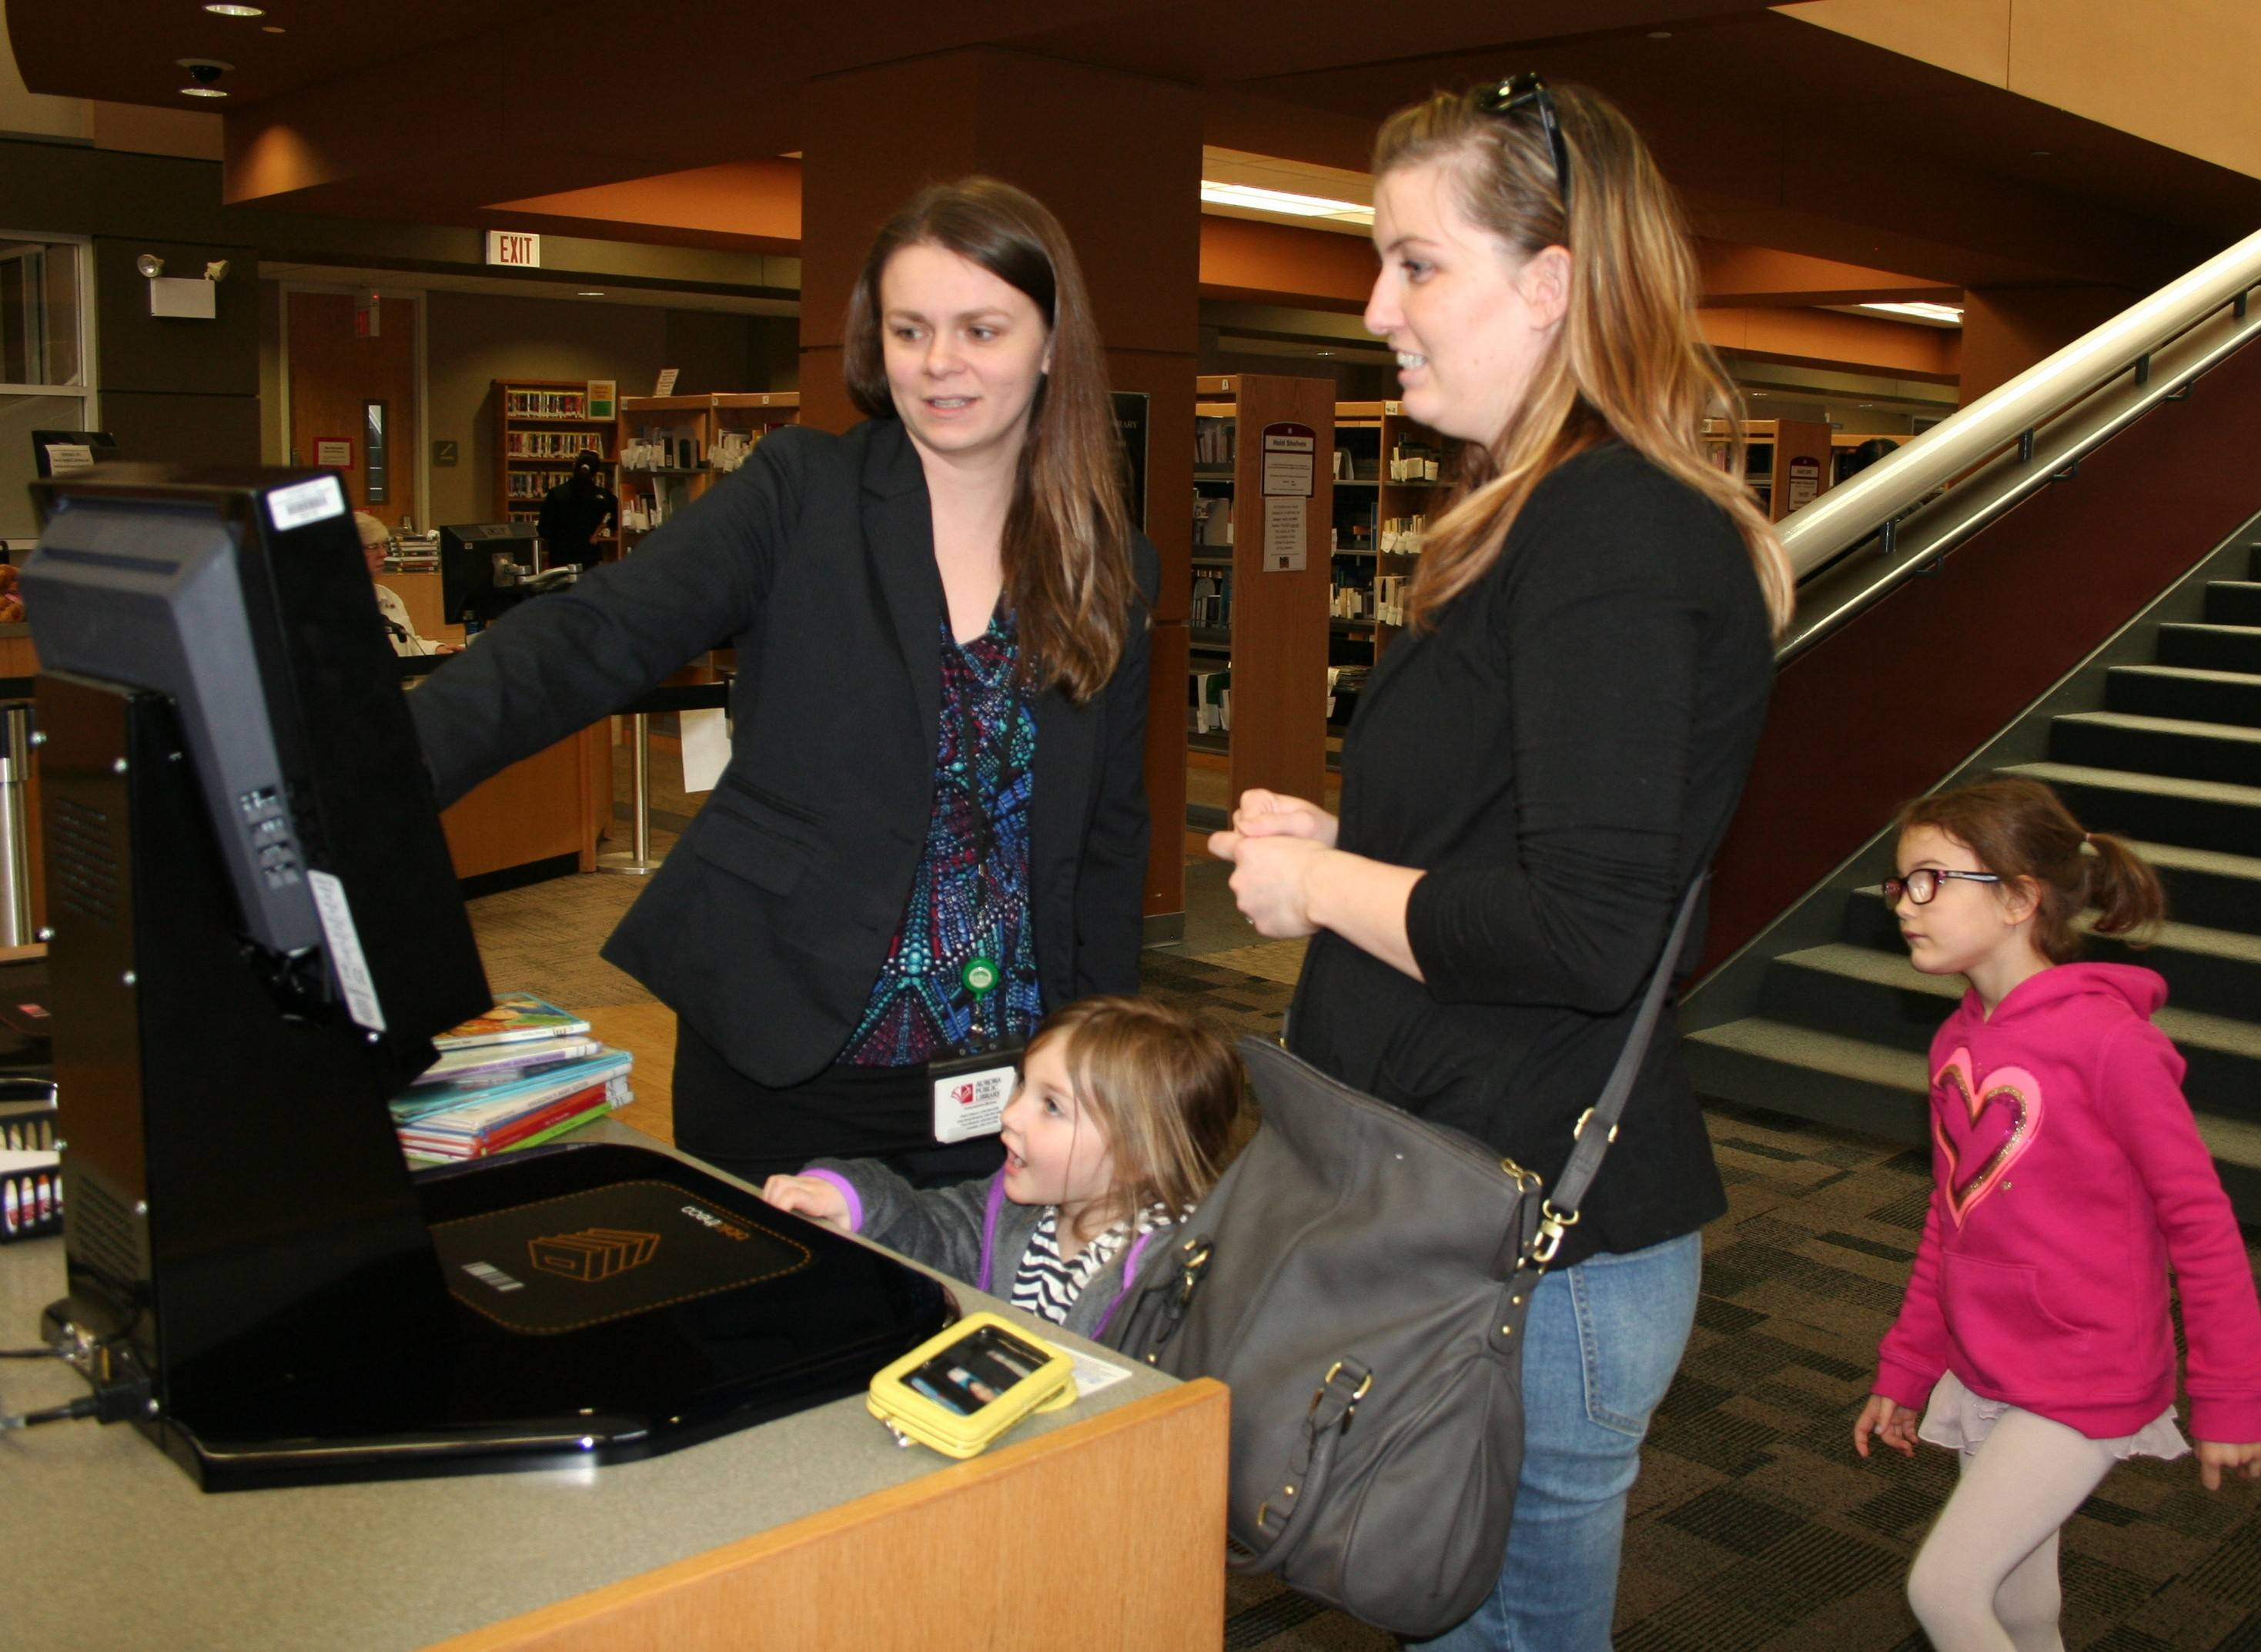 Eola Road Branch Circulation Manager Crissy Barnat helps Brittany Macaulay check out books on the new self-check system.